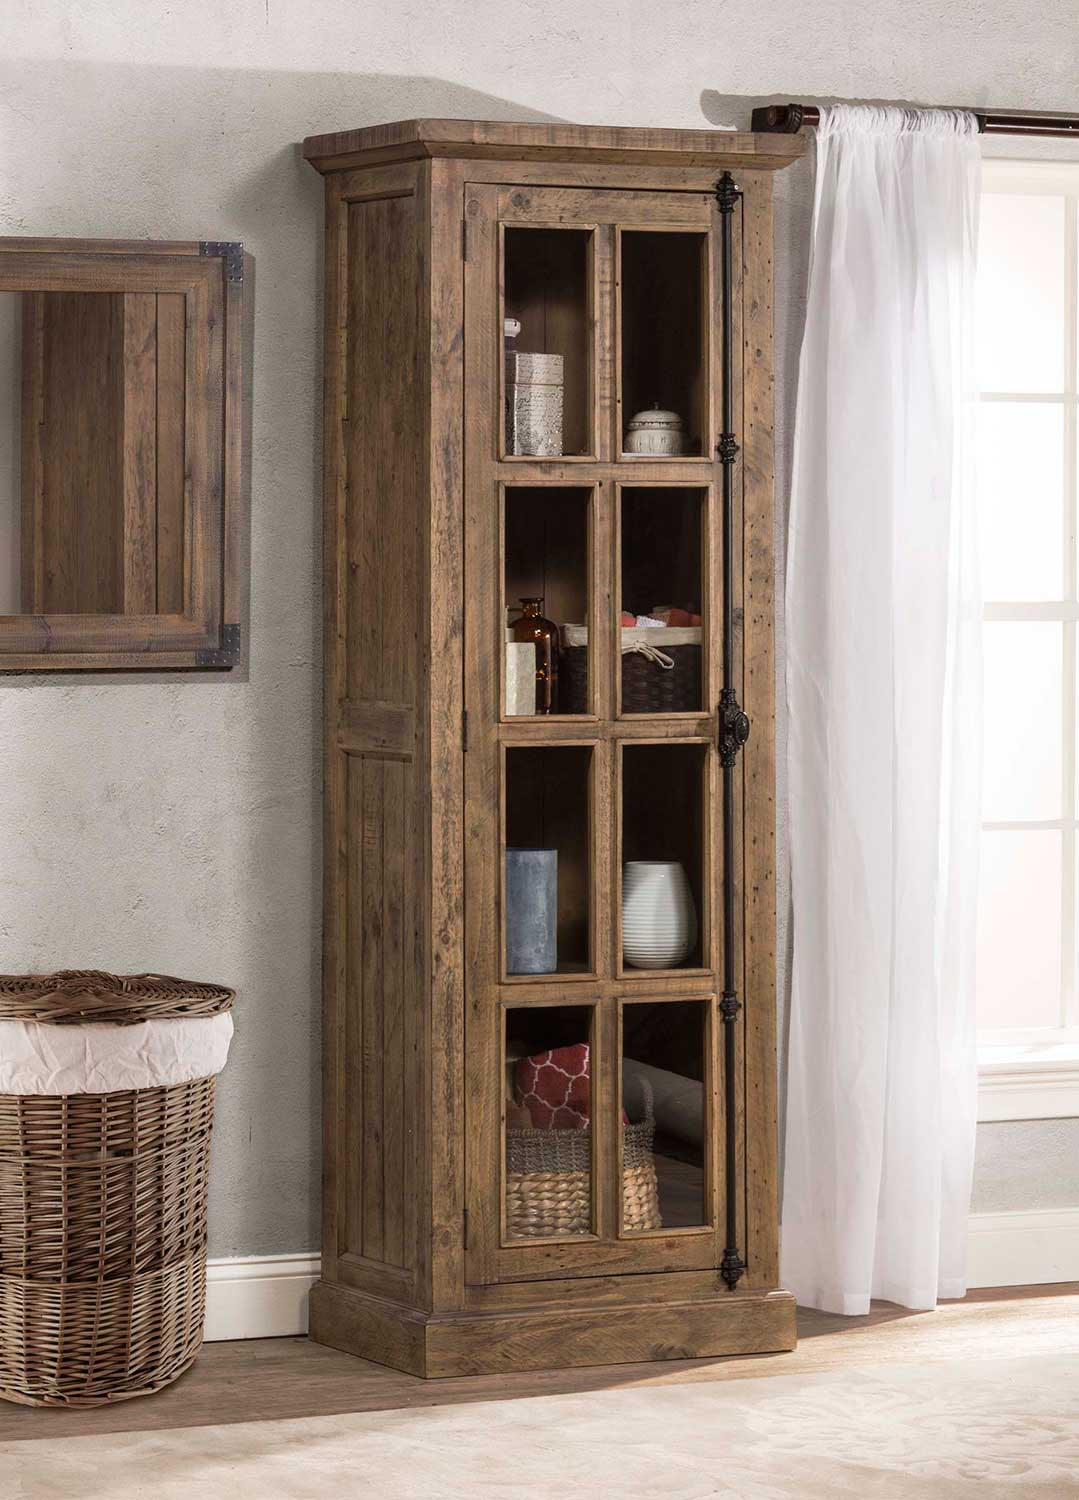 Hillsdale Tuscan Retreat Tall Single Door Cabinet - Aged Gray